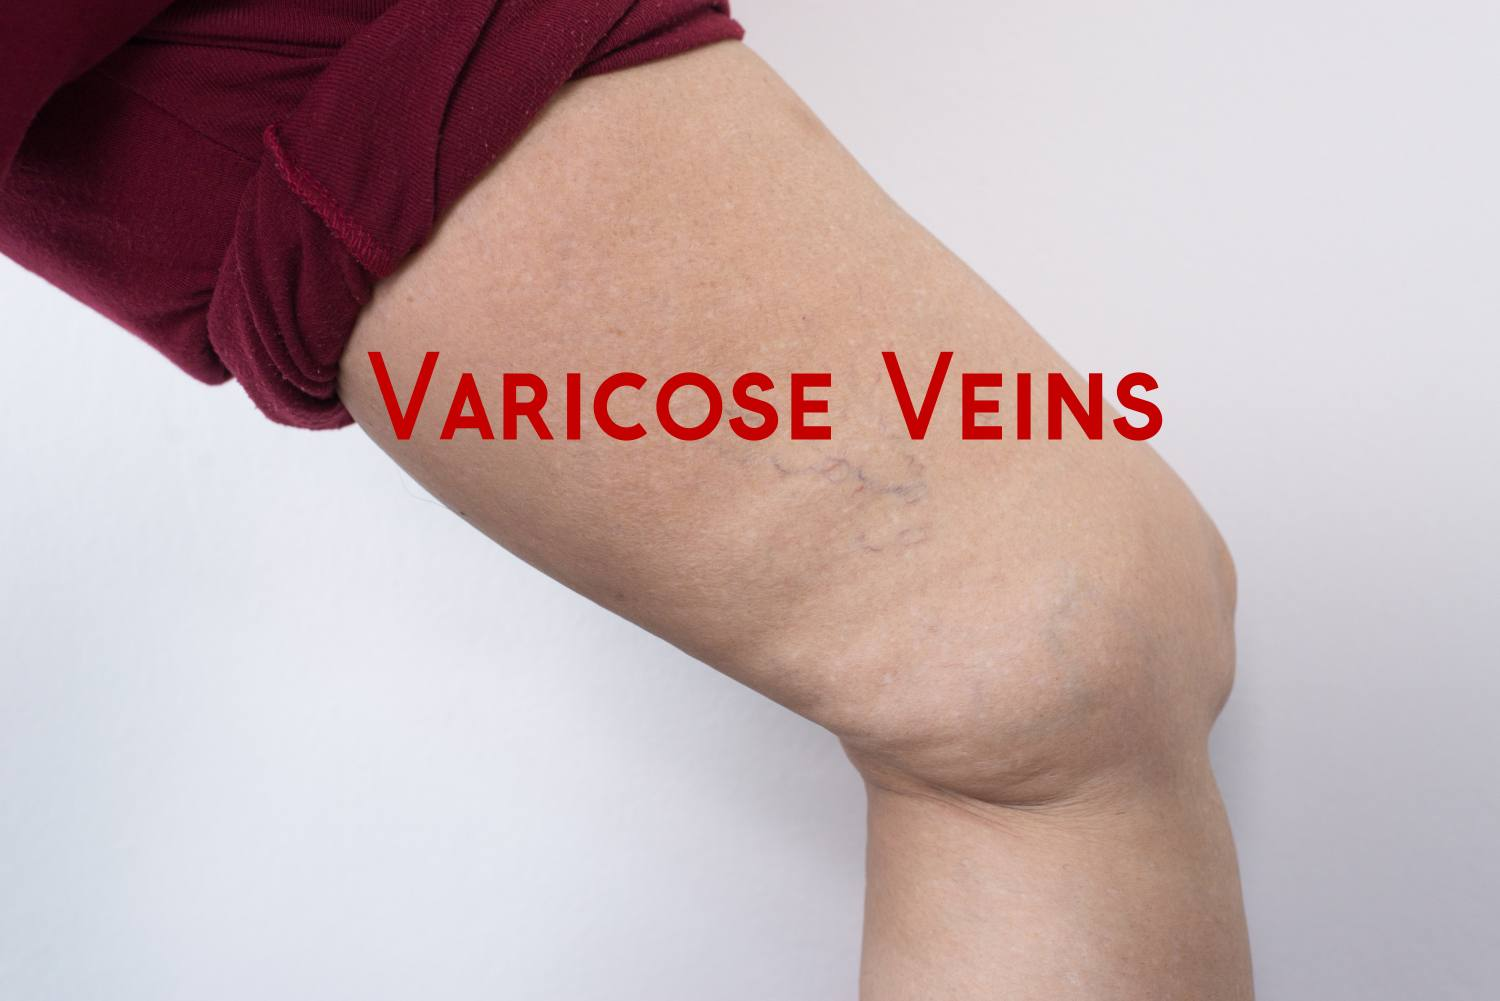 !0 Home Remedies for Varicose Veins